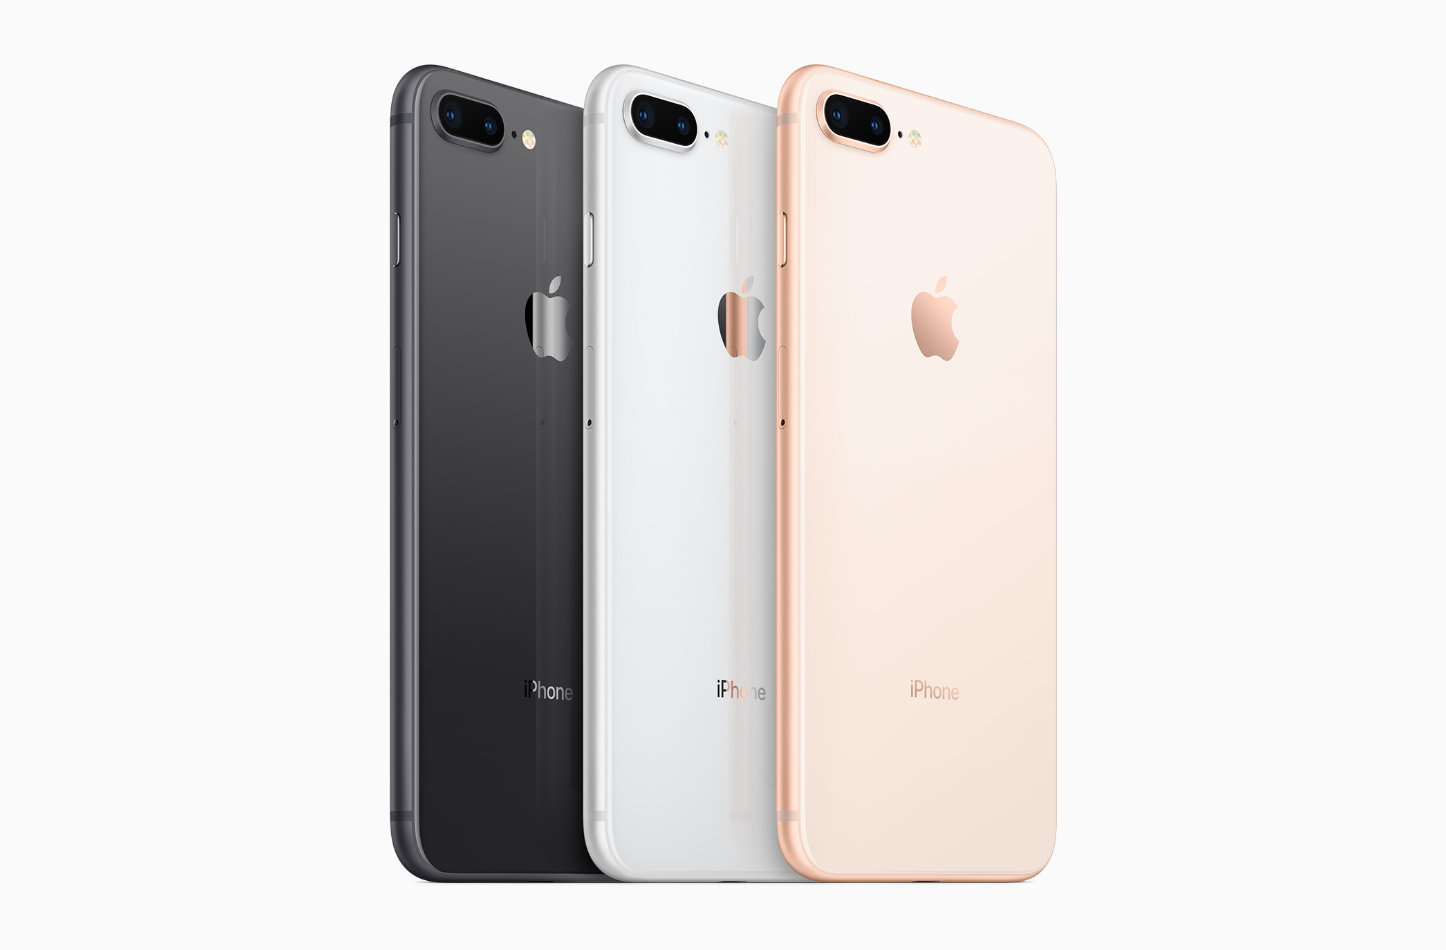 Iphone 8 color models